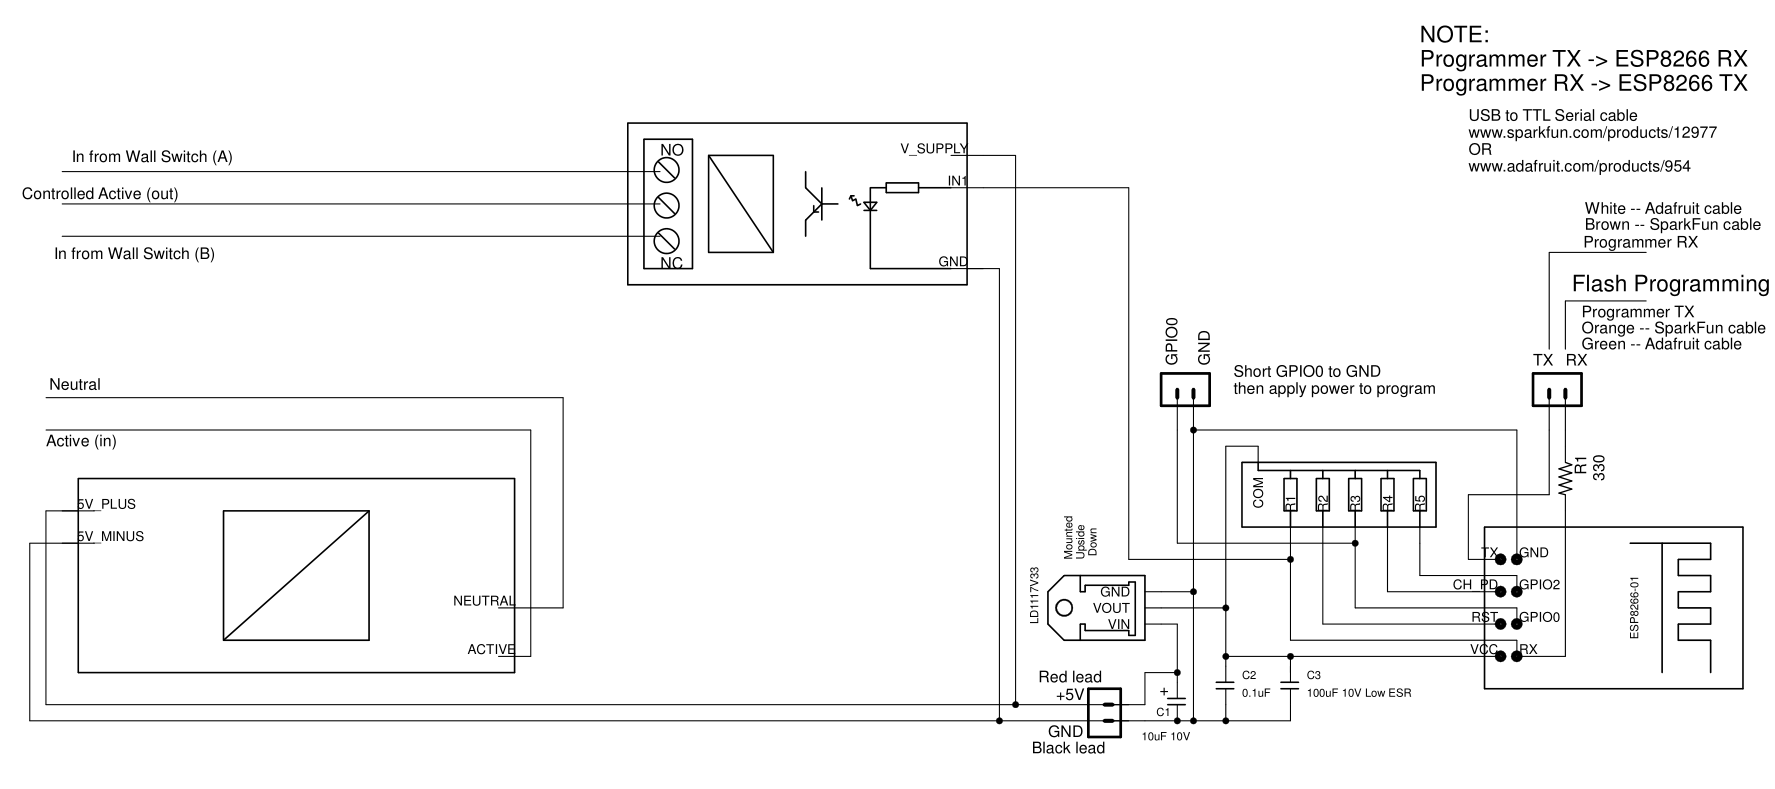 european wiring switch circuit connection diagram \u2022 light switch three retrofit house lights with wifi keep existing switches controlled rh forward com au european light switch wiring switch wiring for dummies